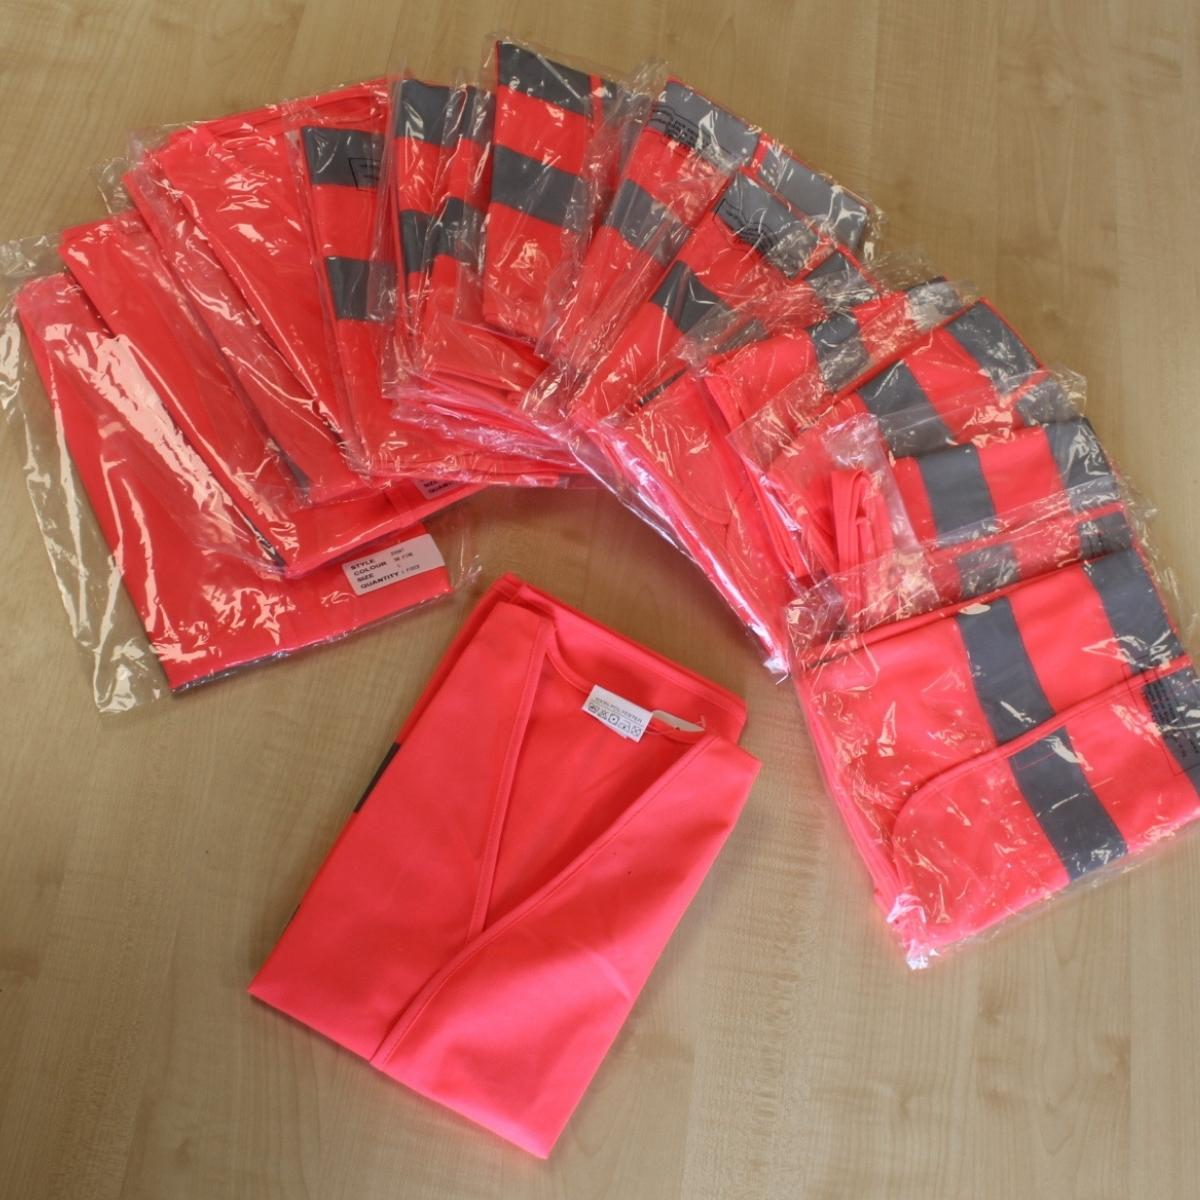 18 Pink waistcoats of assorted sizes